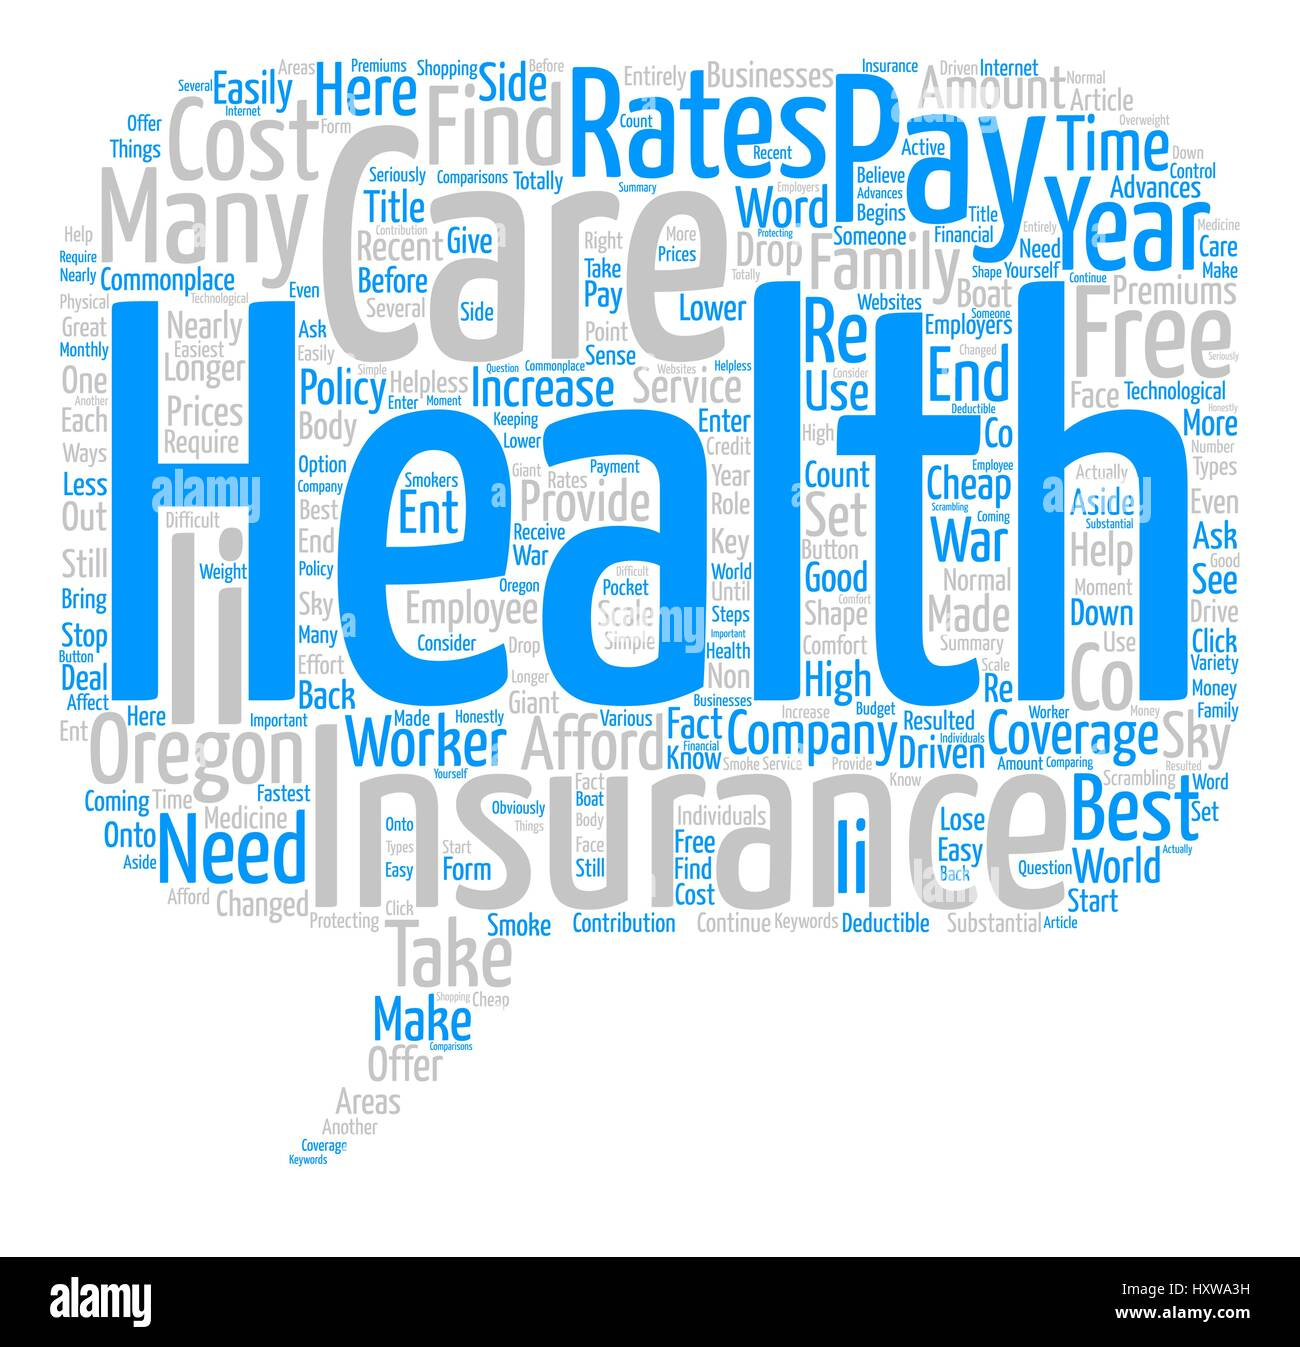 How To Find The Best Rates On Health Insurance In Oregon Word Cloud Stock Vector Image Art Alamy